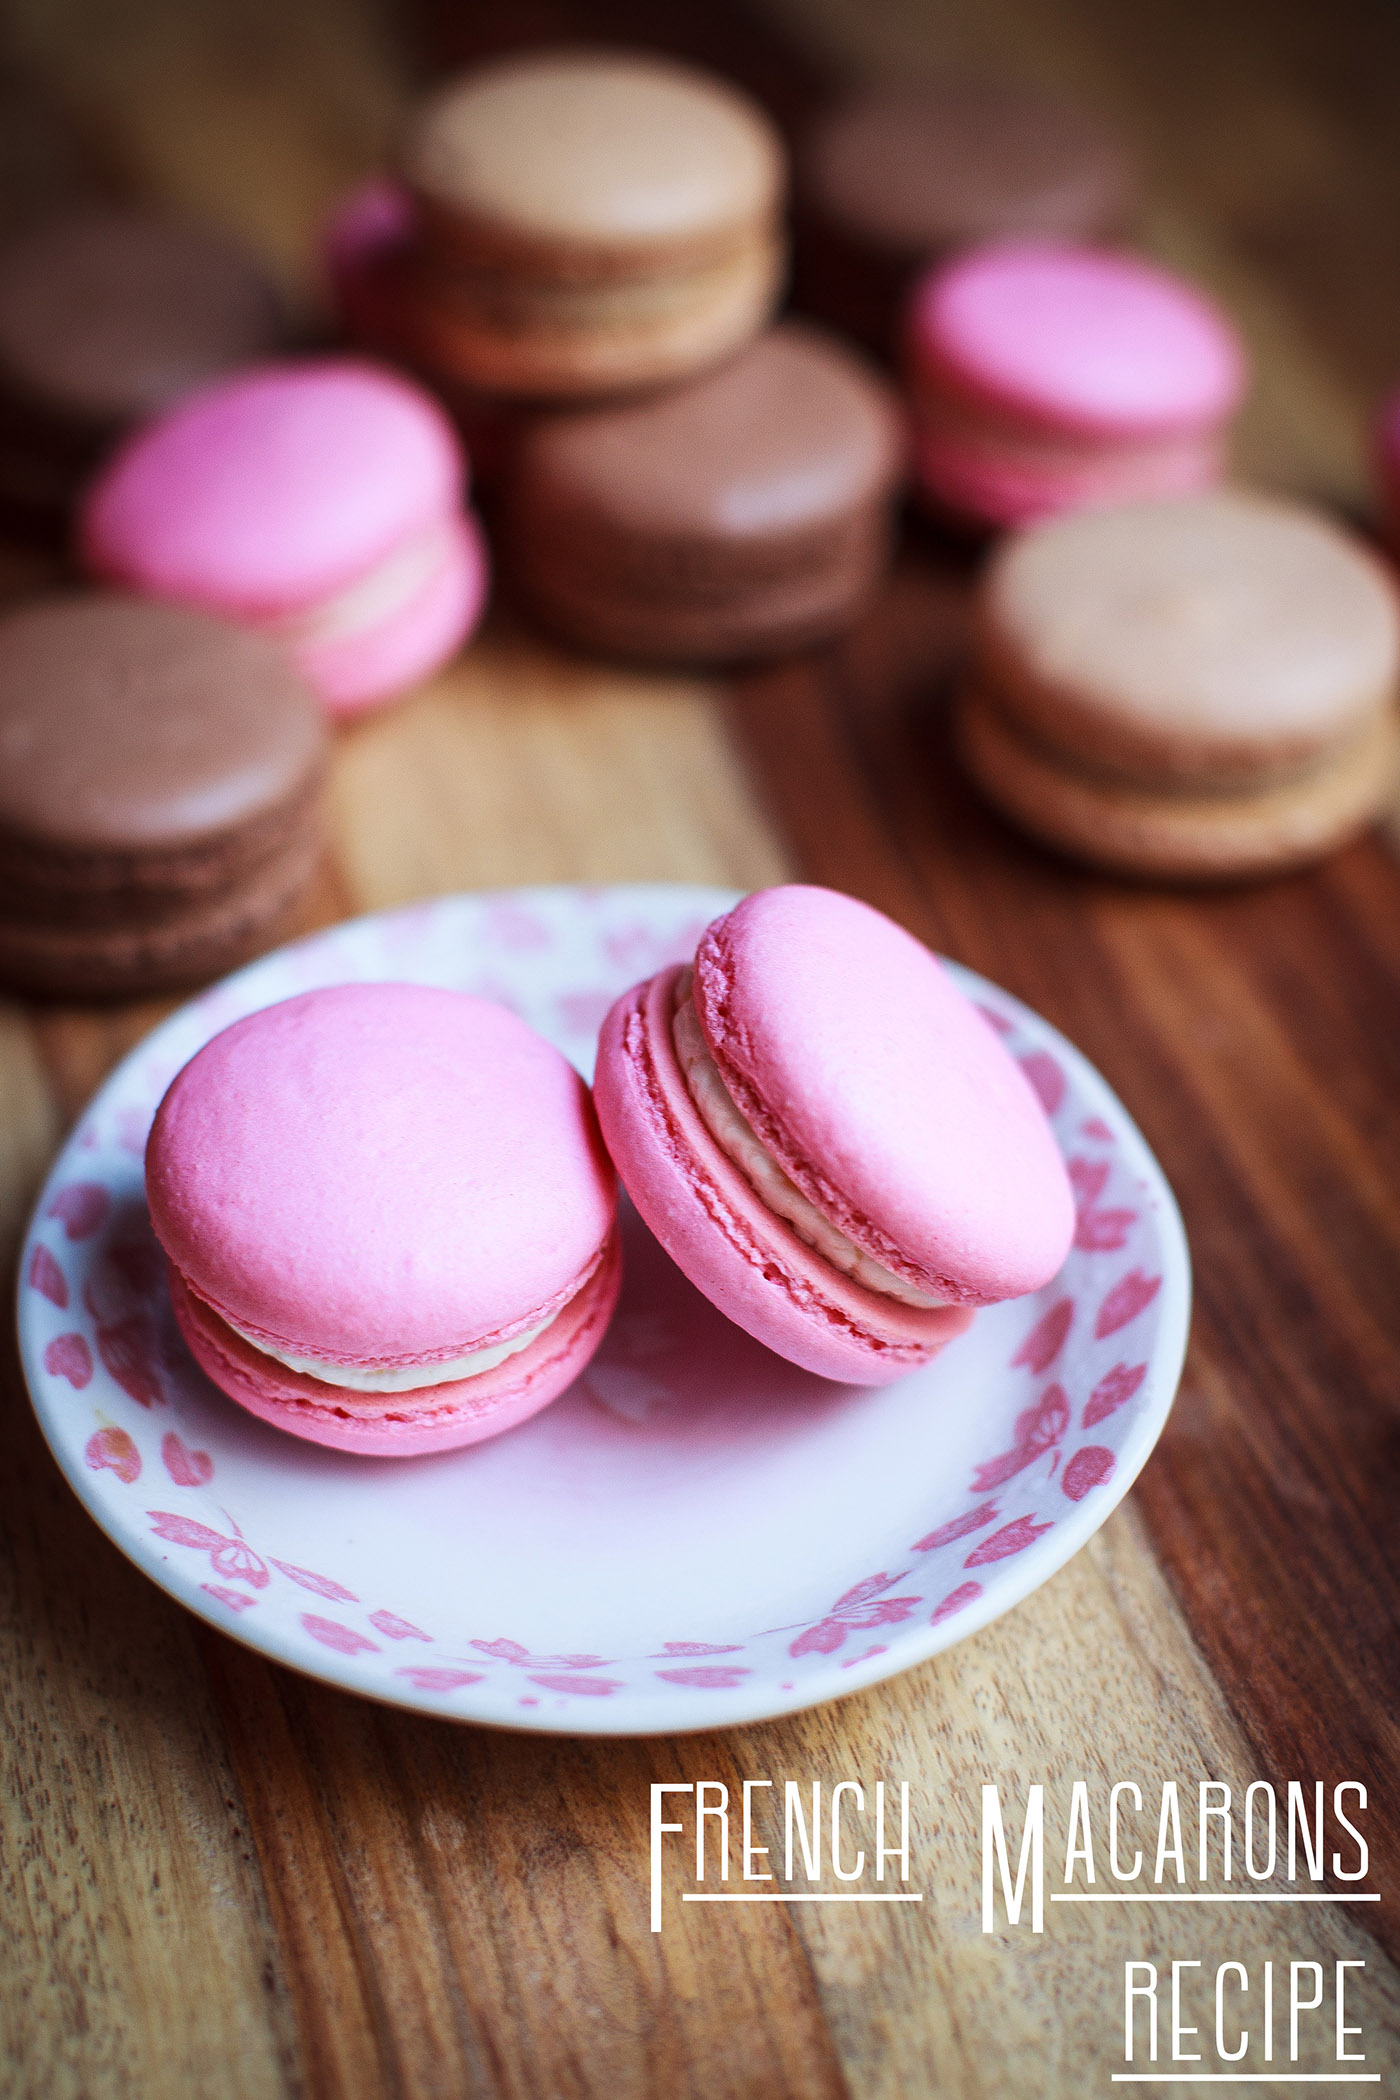 French Macaron Recipe (French Merengue Technique)